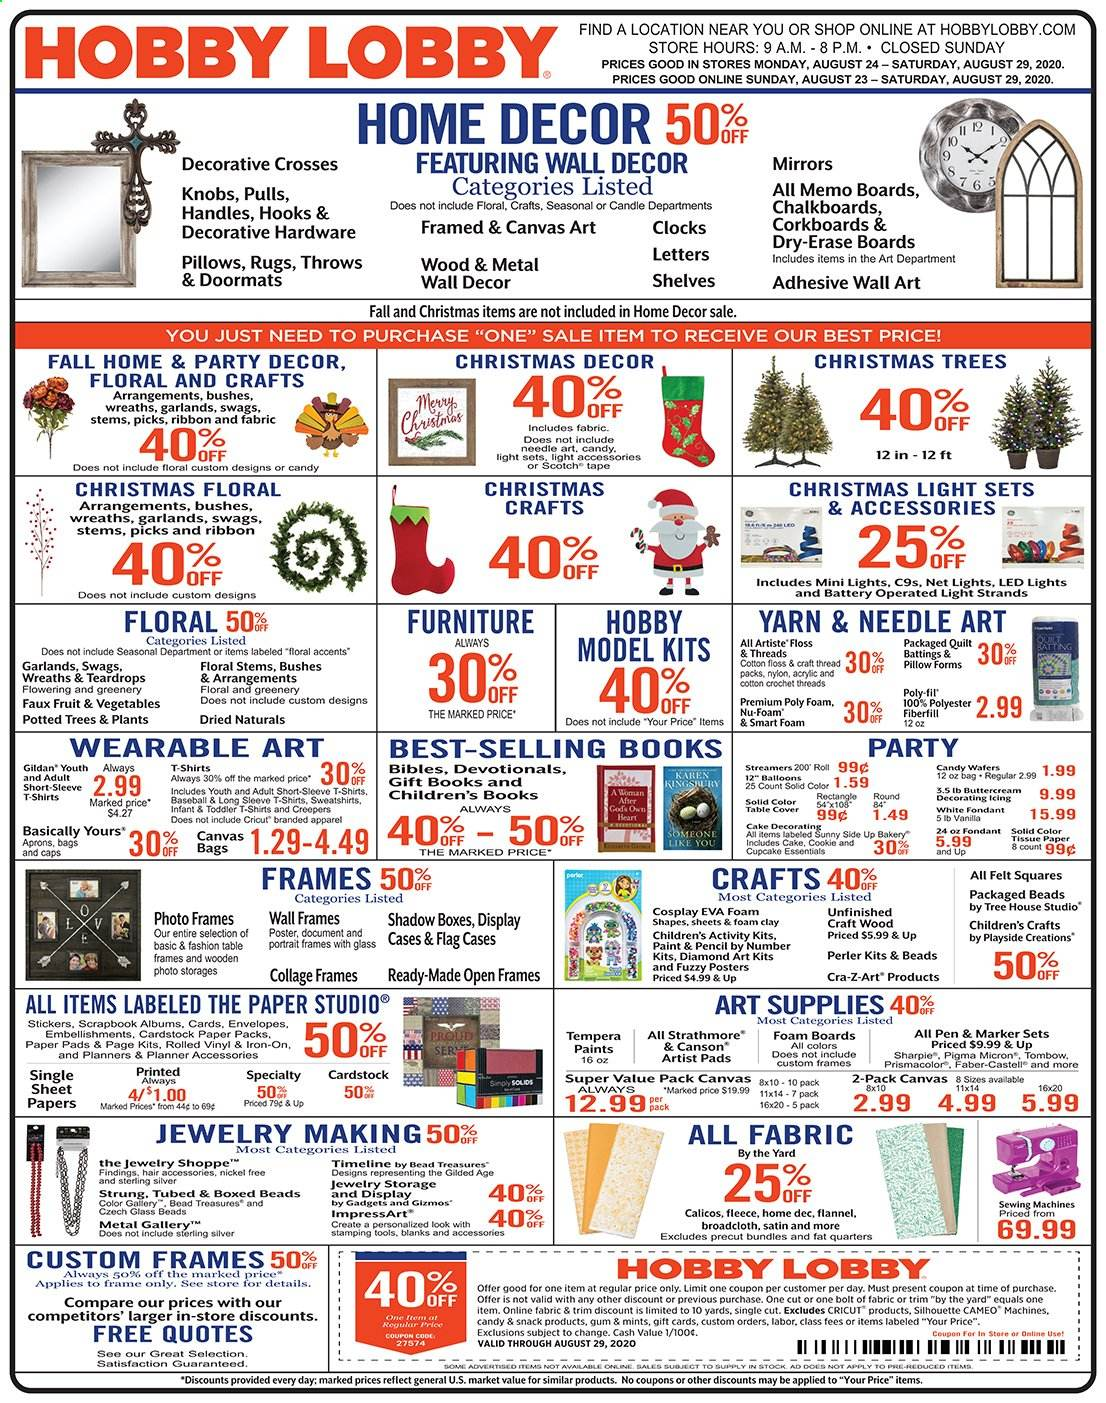 Hobby Lobby Flyer - 08.23.2020 - 08.29.2020 - Sales products - always, apparel, box, candle, cupcake, cupcakes, flannel, foam, frame, furniture, knob, led light, light set, rug, sheet, shelf, shelves, shirt, solid, sticker, sweatshirt, table, tape, throw, tree, wafers, wall decor, handles, hook, christmas tree, christmas decor, iron, pillow, quilt, pads, christmas lights, cake, candy, vegetables, snack, jewelry, flag, gum, pen, envelope, marker, vinyl, fruit, thread, sewing, ribbon, stickers, envelopes, vegetable, paint, tools, canvas, craft, essentials, led, throws. Page 1.